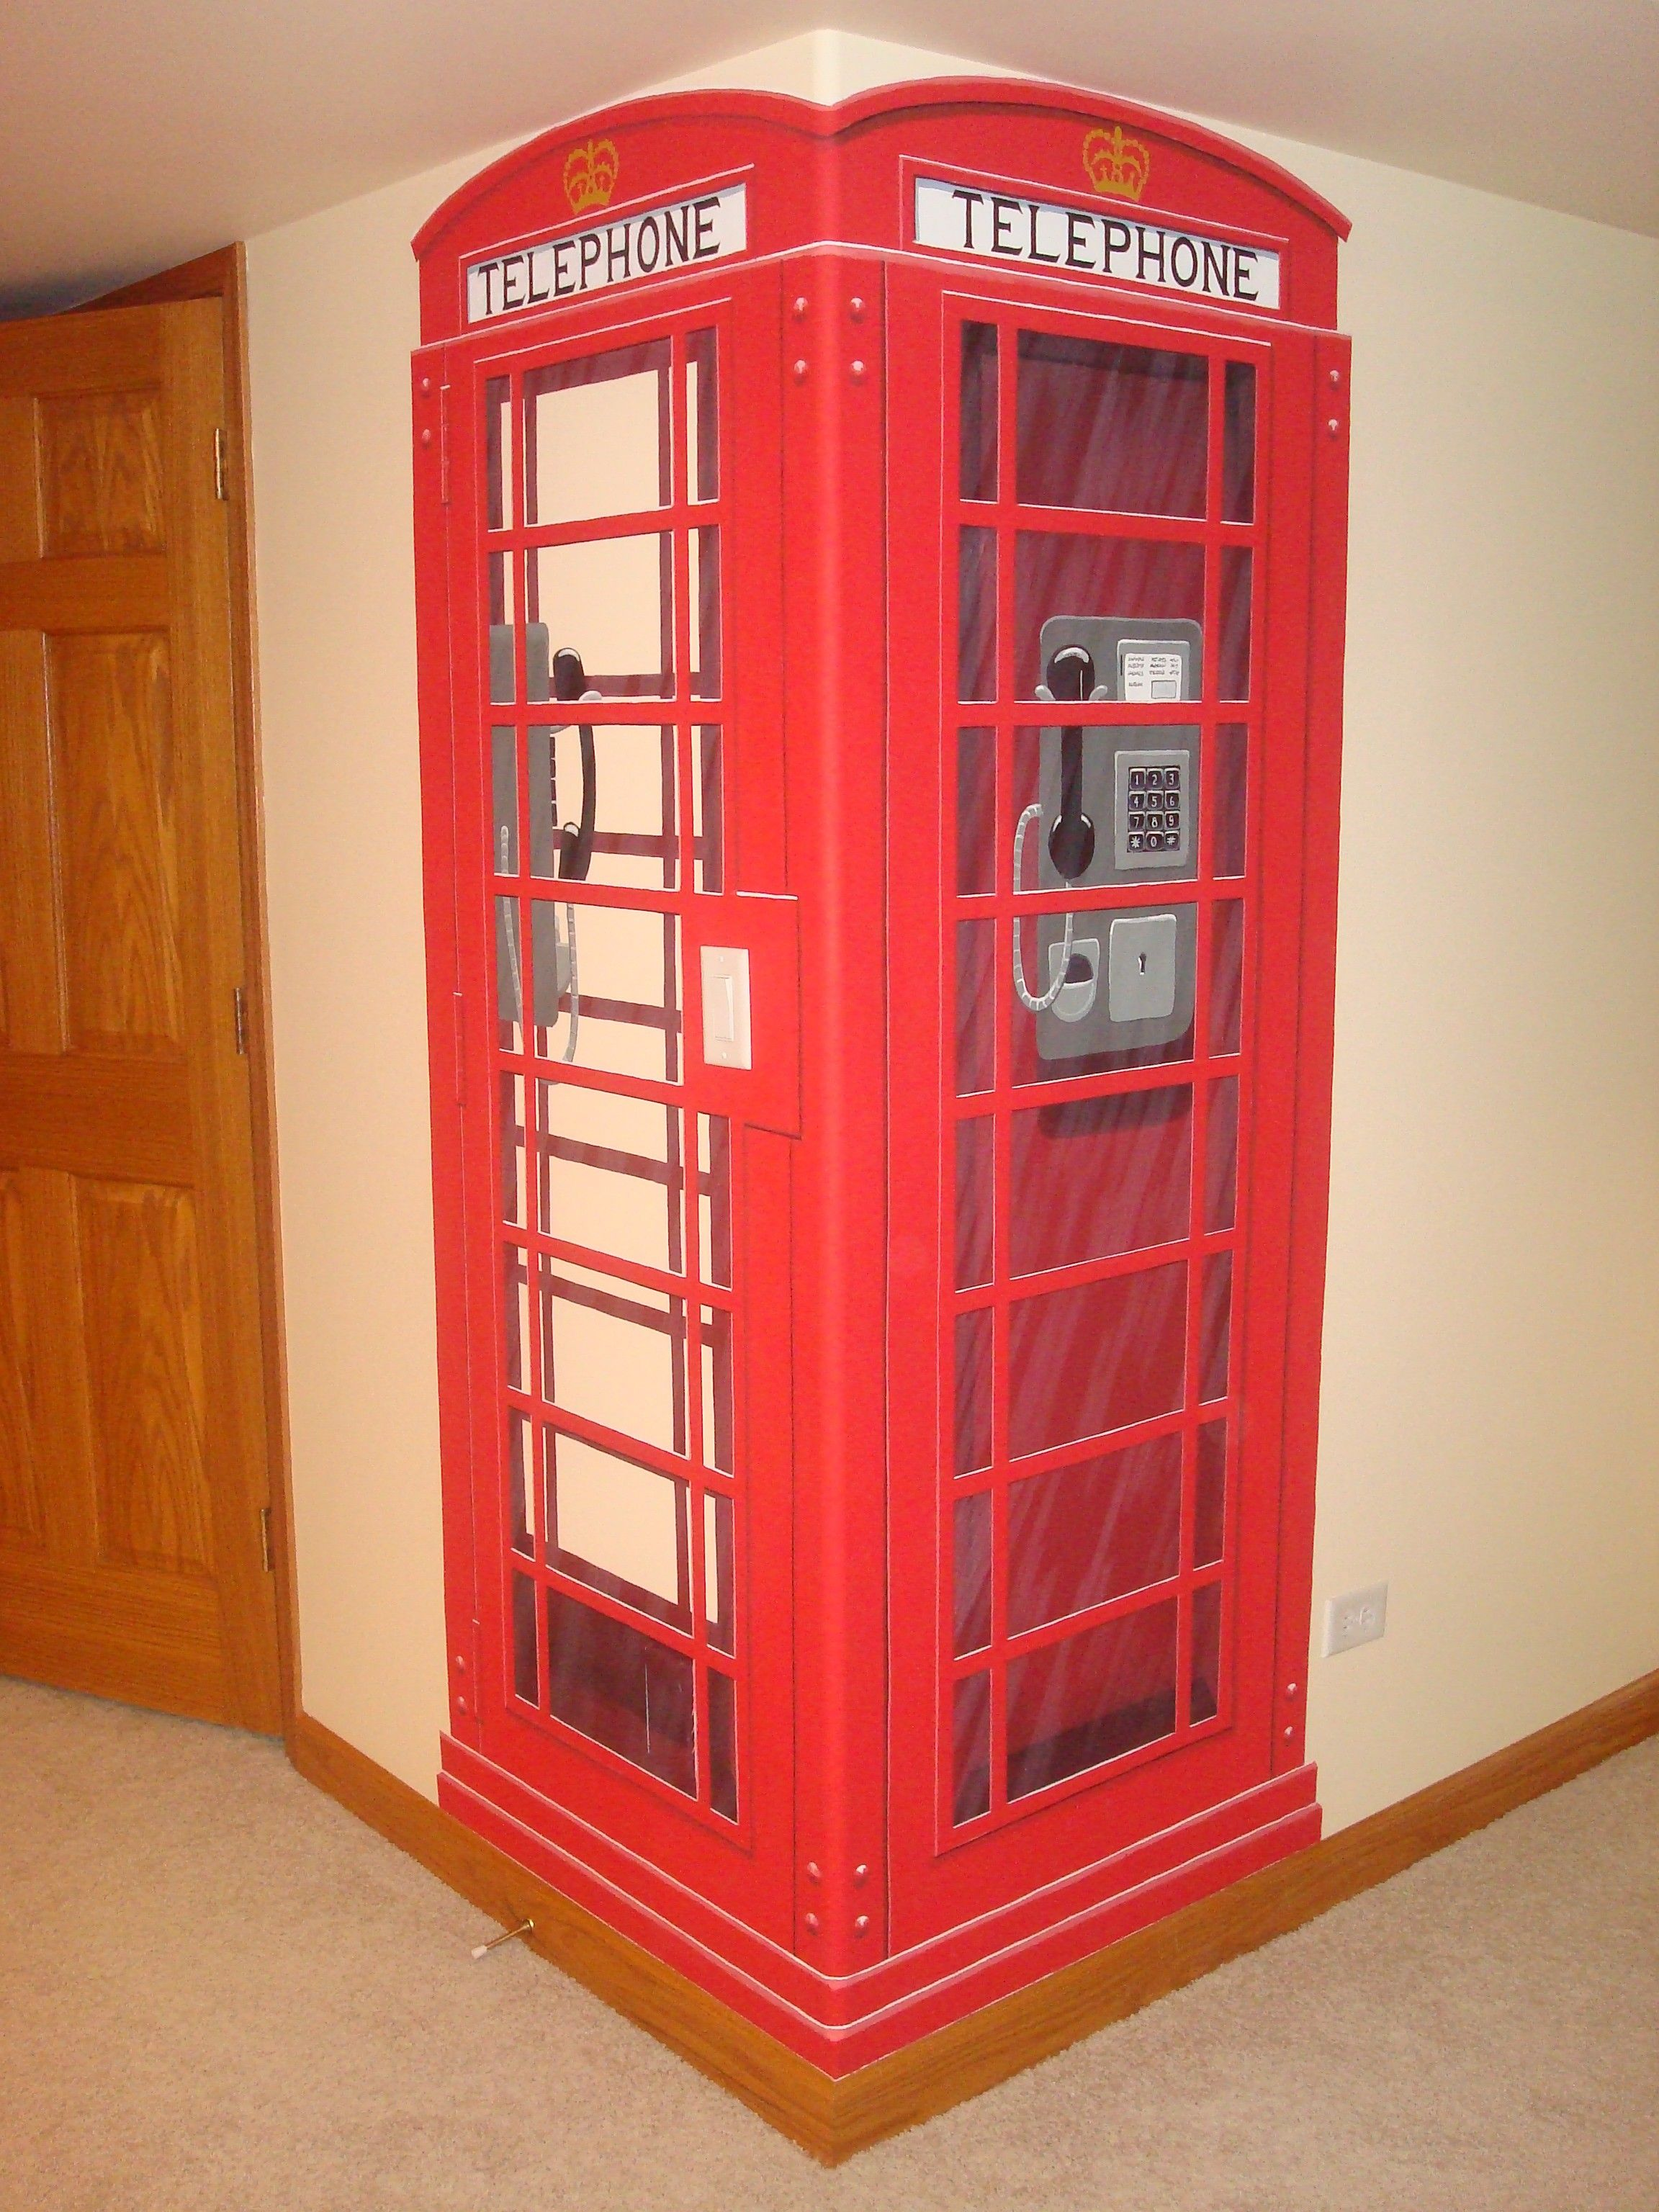 British phone booth mural. How cool is that??? … | Pinteres…